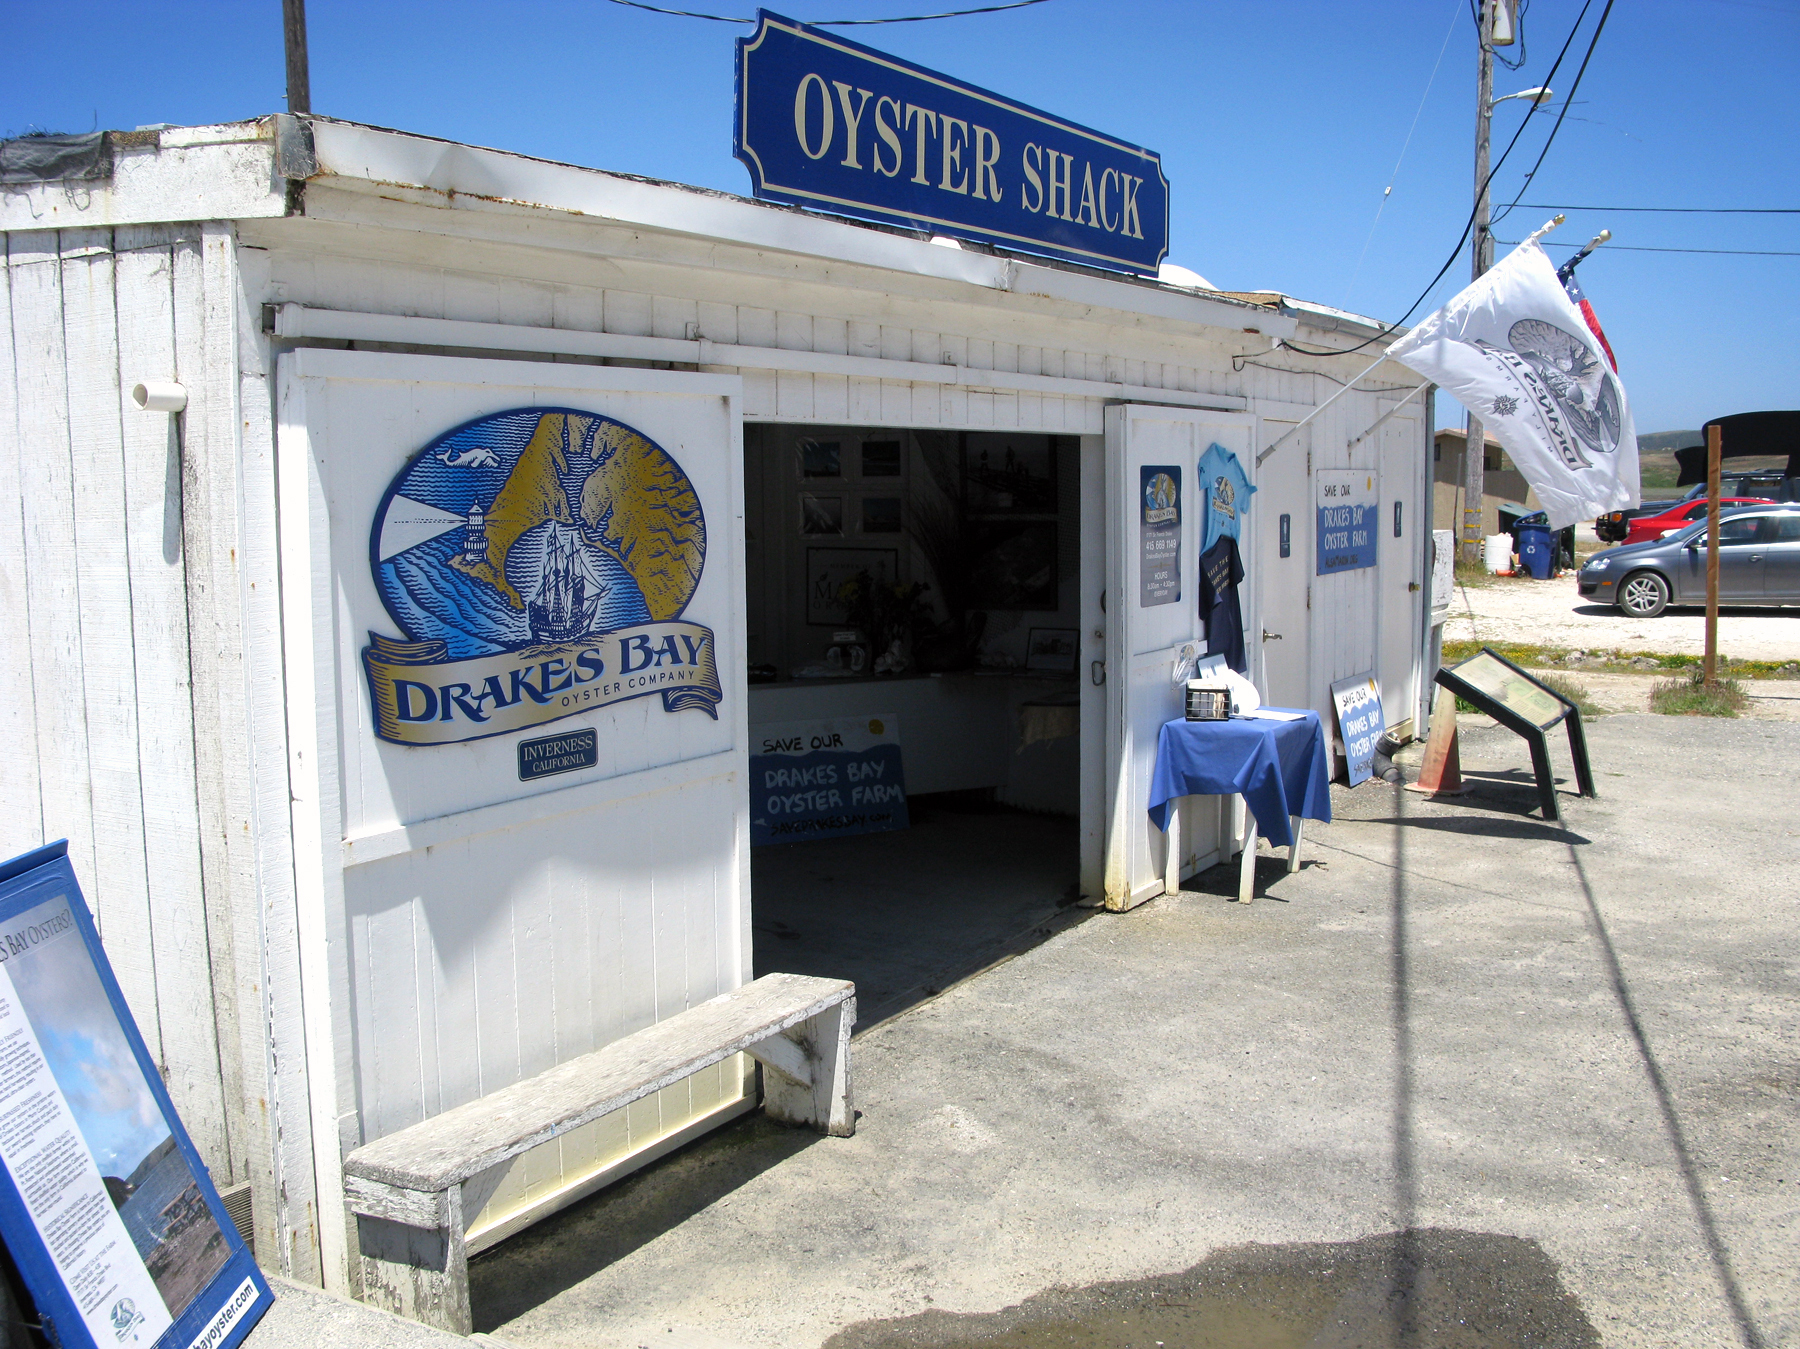 The Drakes Bay Oyster Farm caters to local residents and restaurants. But unless its lease is renewed, its days are numbered. Photo: Richard Gonzales/NPR